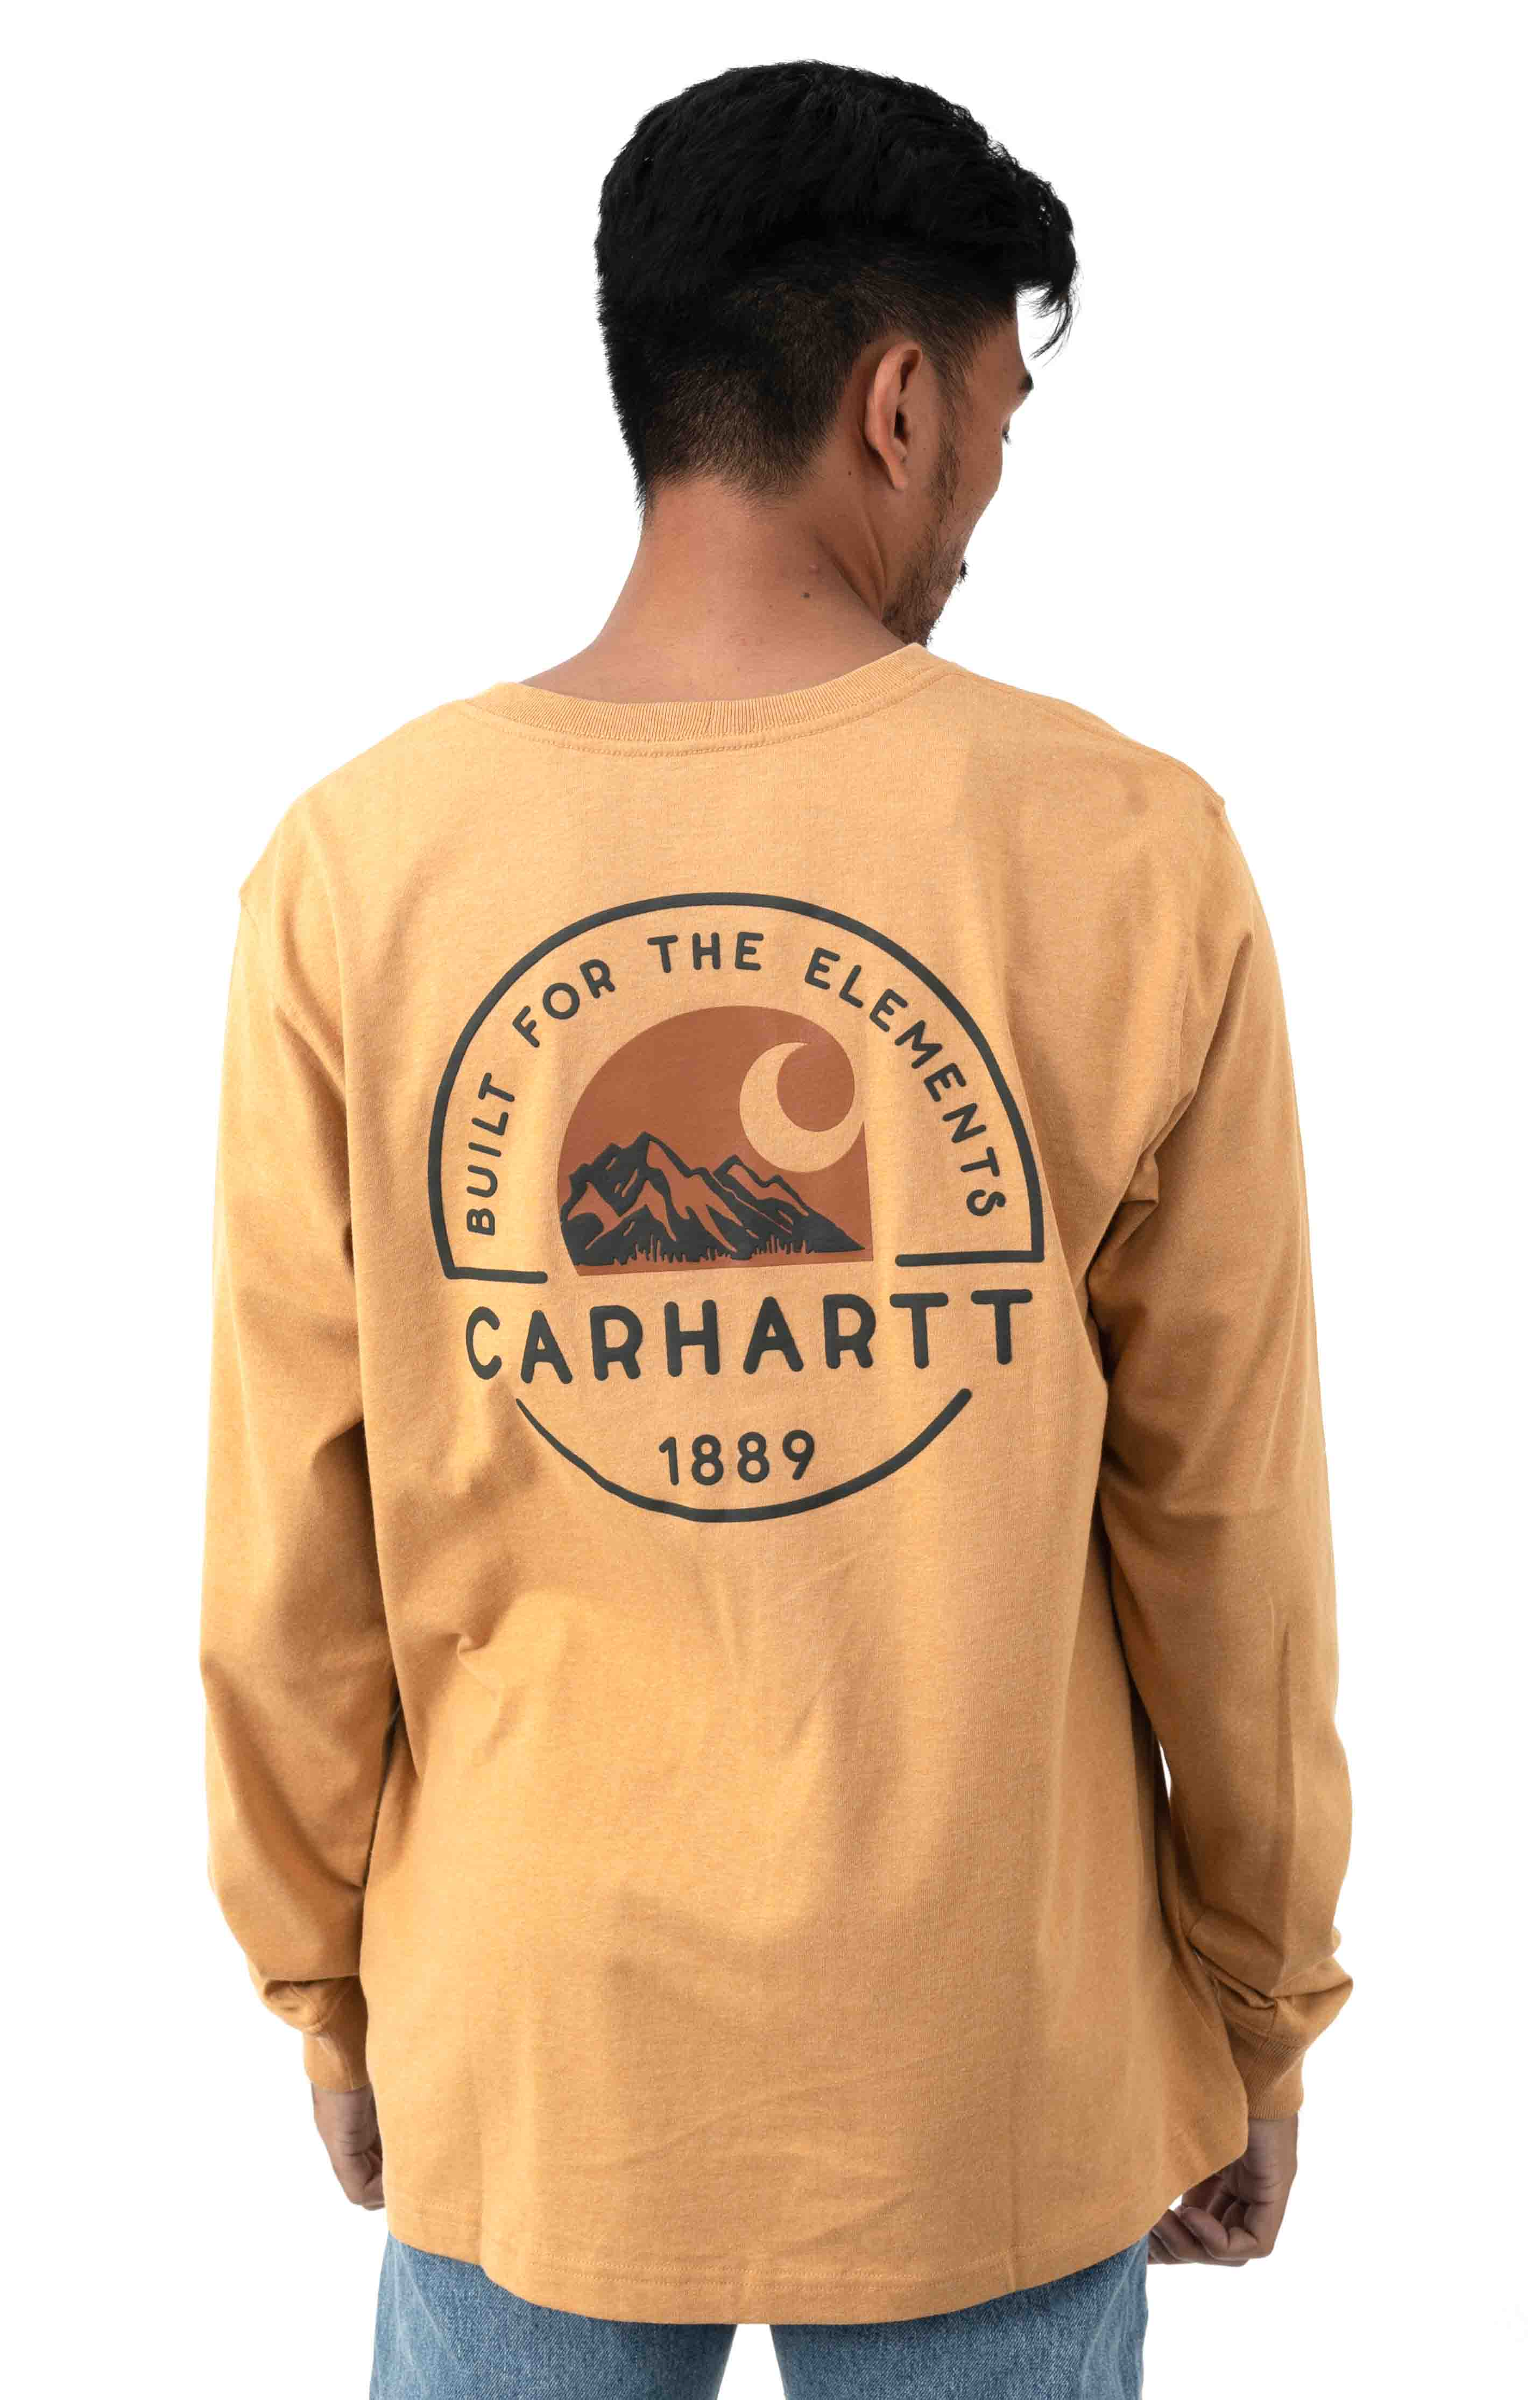 (104438) Relaxed Fit HW L/S Pocket Built For The Elements Graphic Shirt - Yellowstone Hthr